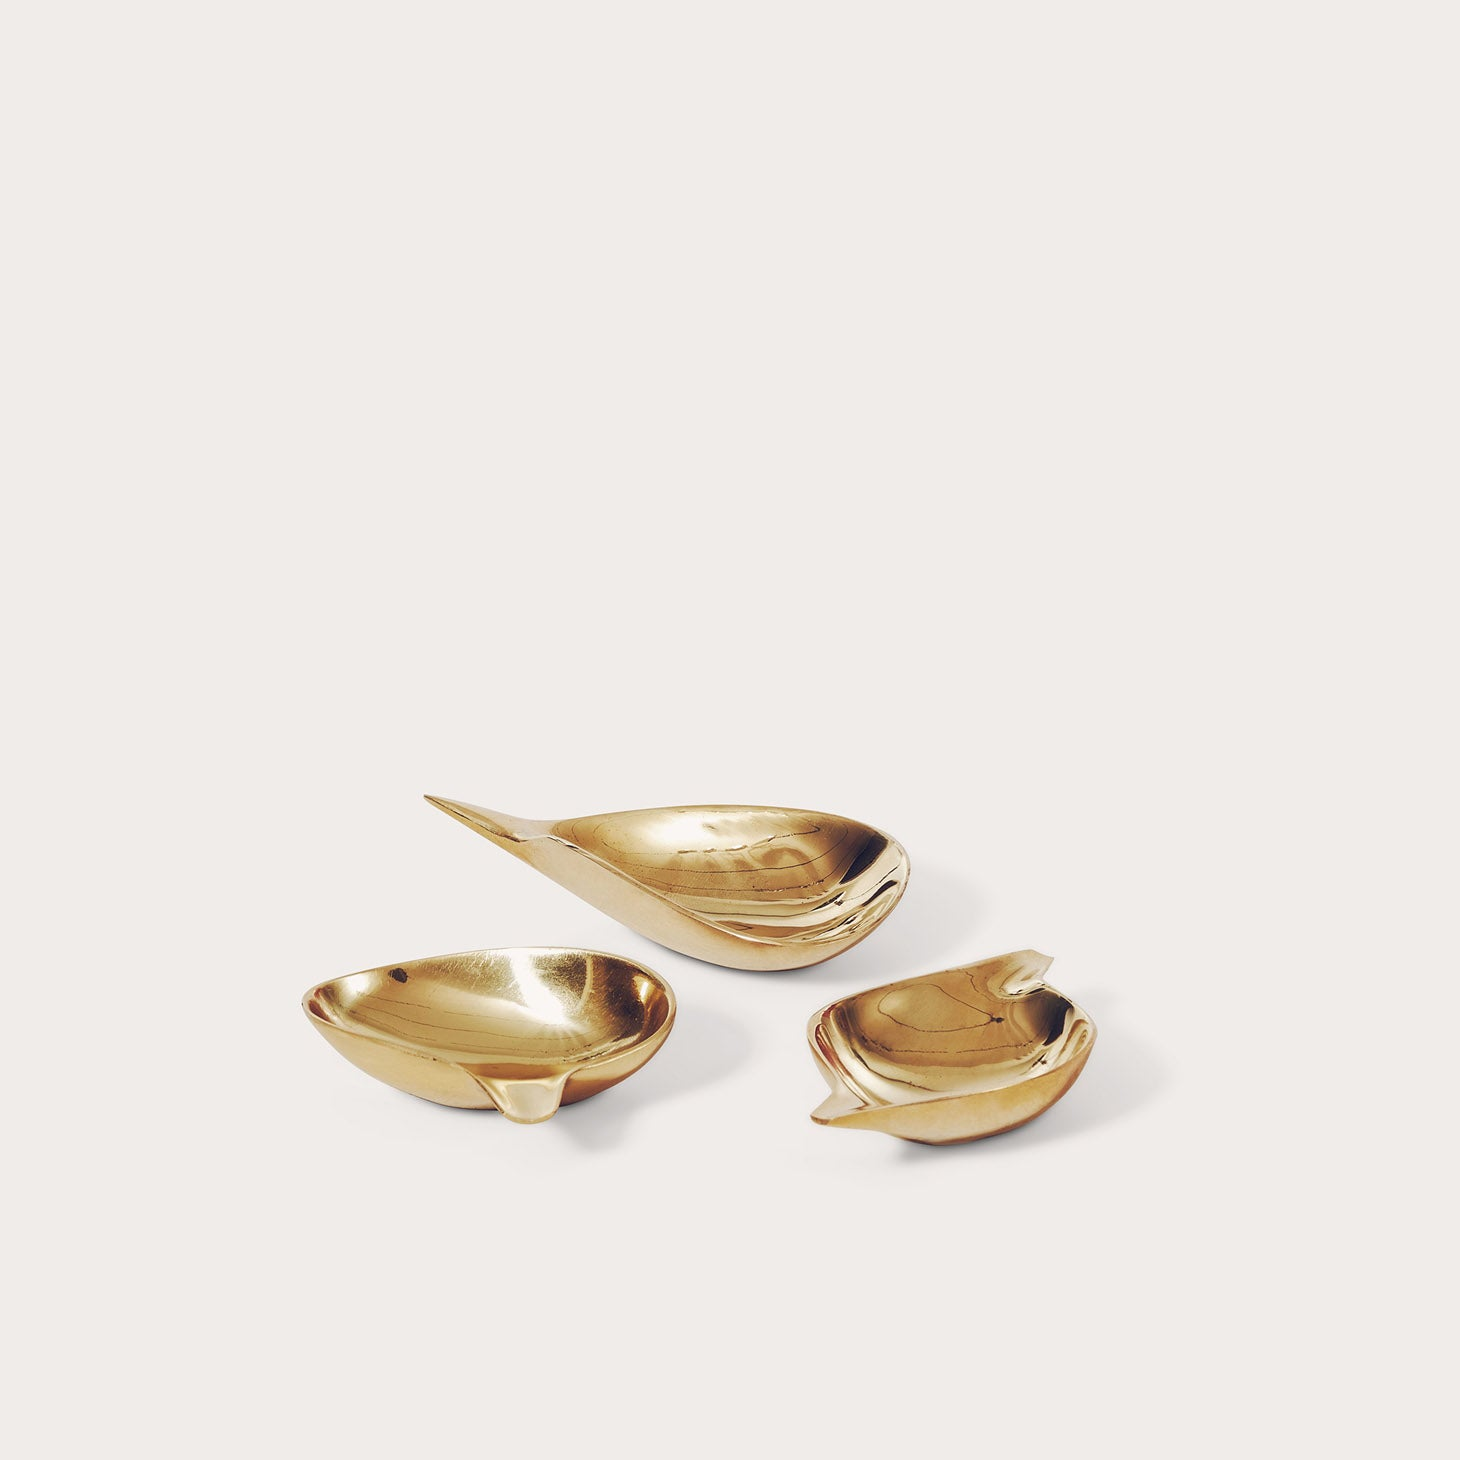 Ashtray Leaf Accessories Carl Auböck Designer Furniture Sku: 772-100-10045